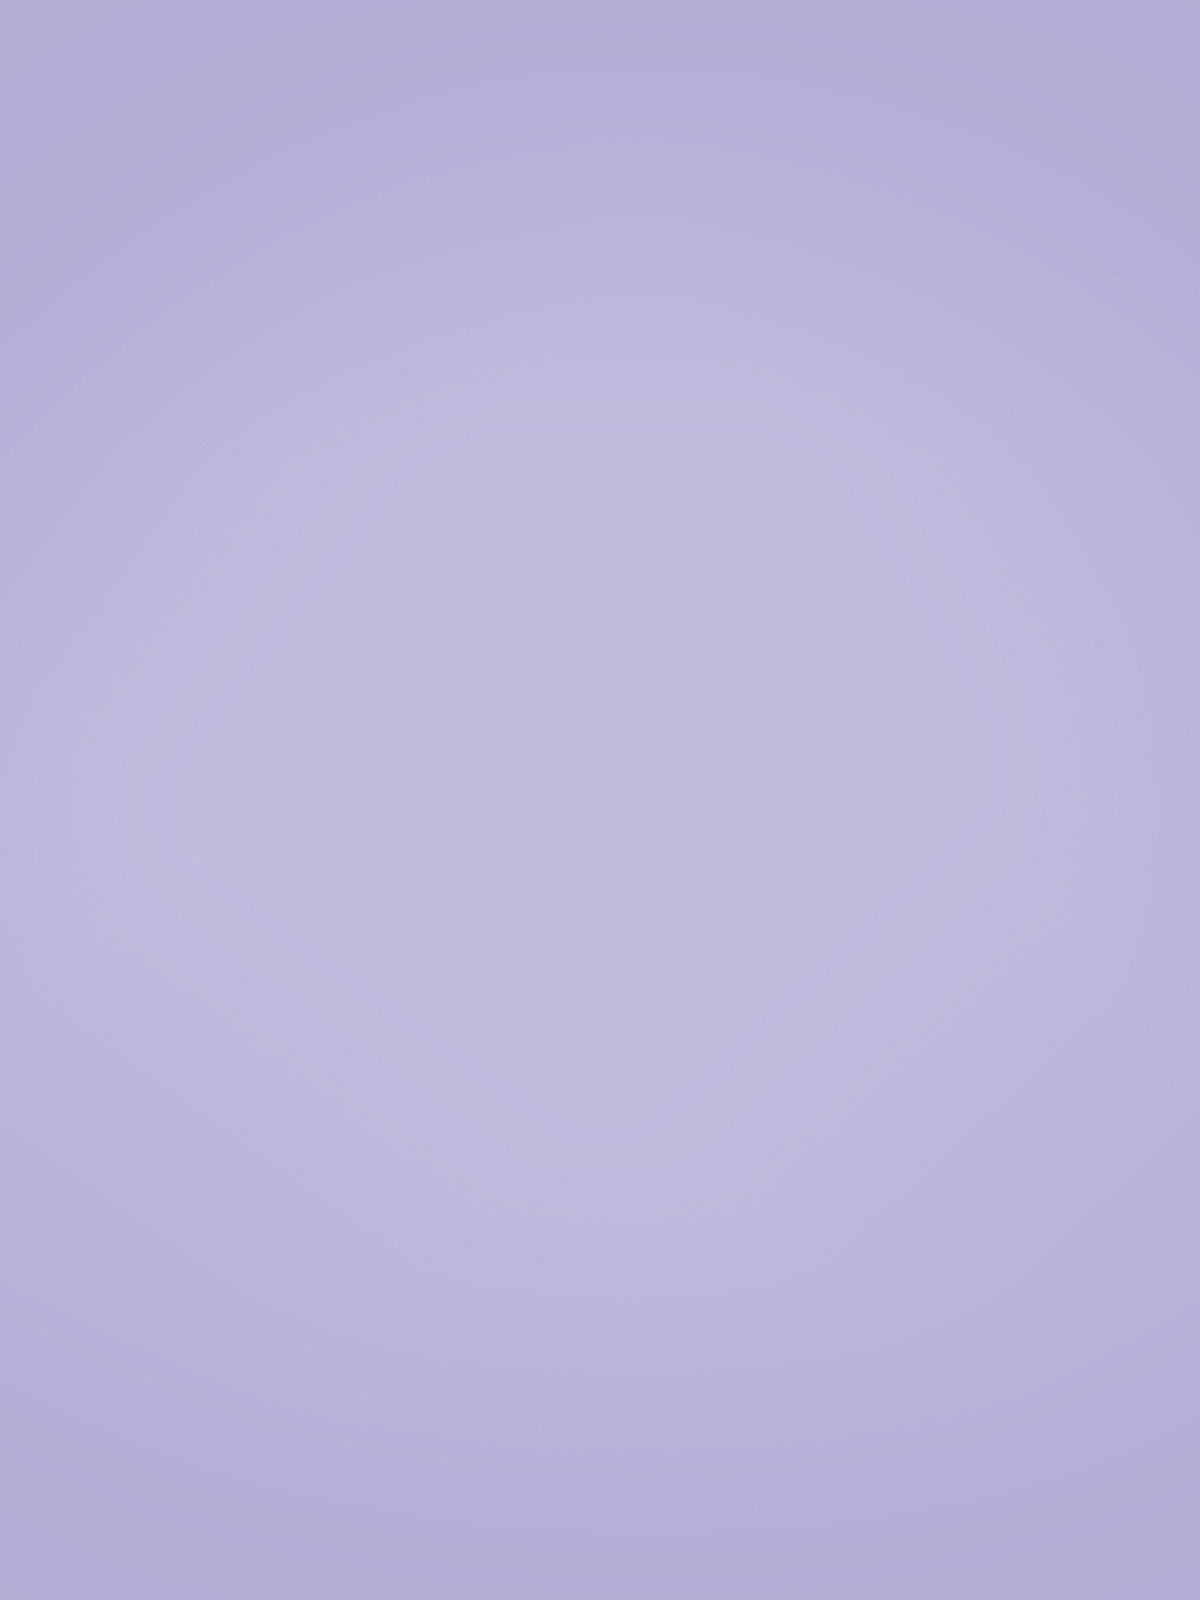 Violet Solid Printed Photography Background / 9100 - DropPlace